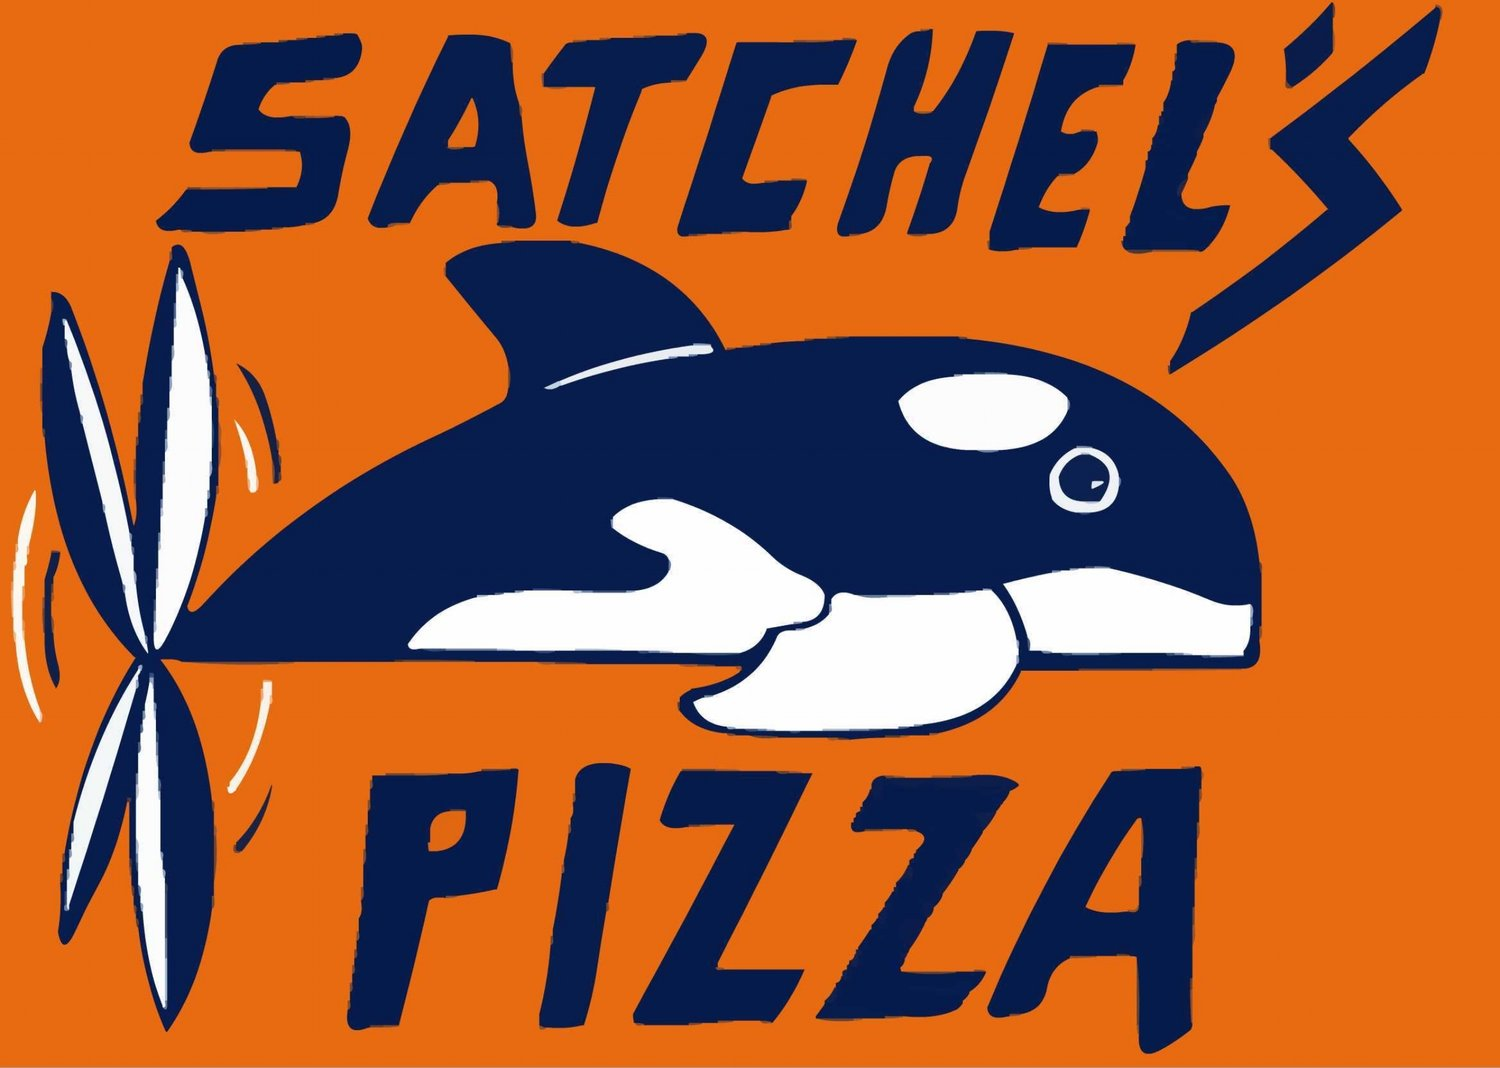 Satchel's Pizza